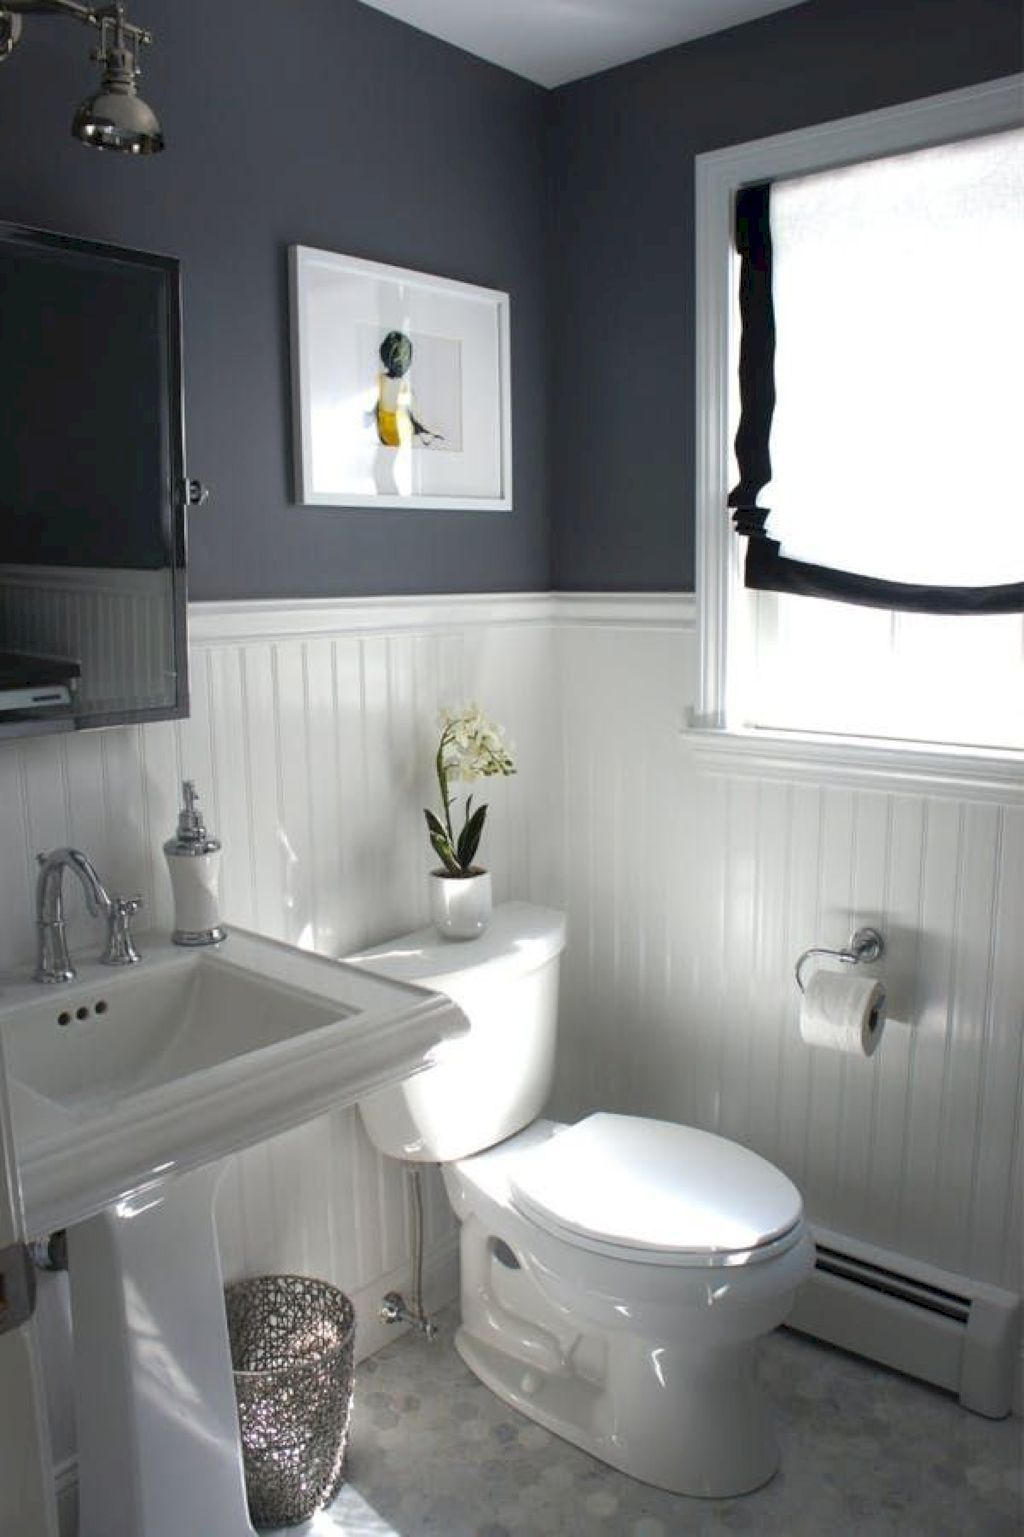 45 Affordable Small Master Bathroom Remodel Ideas on a ...